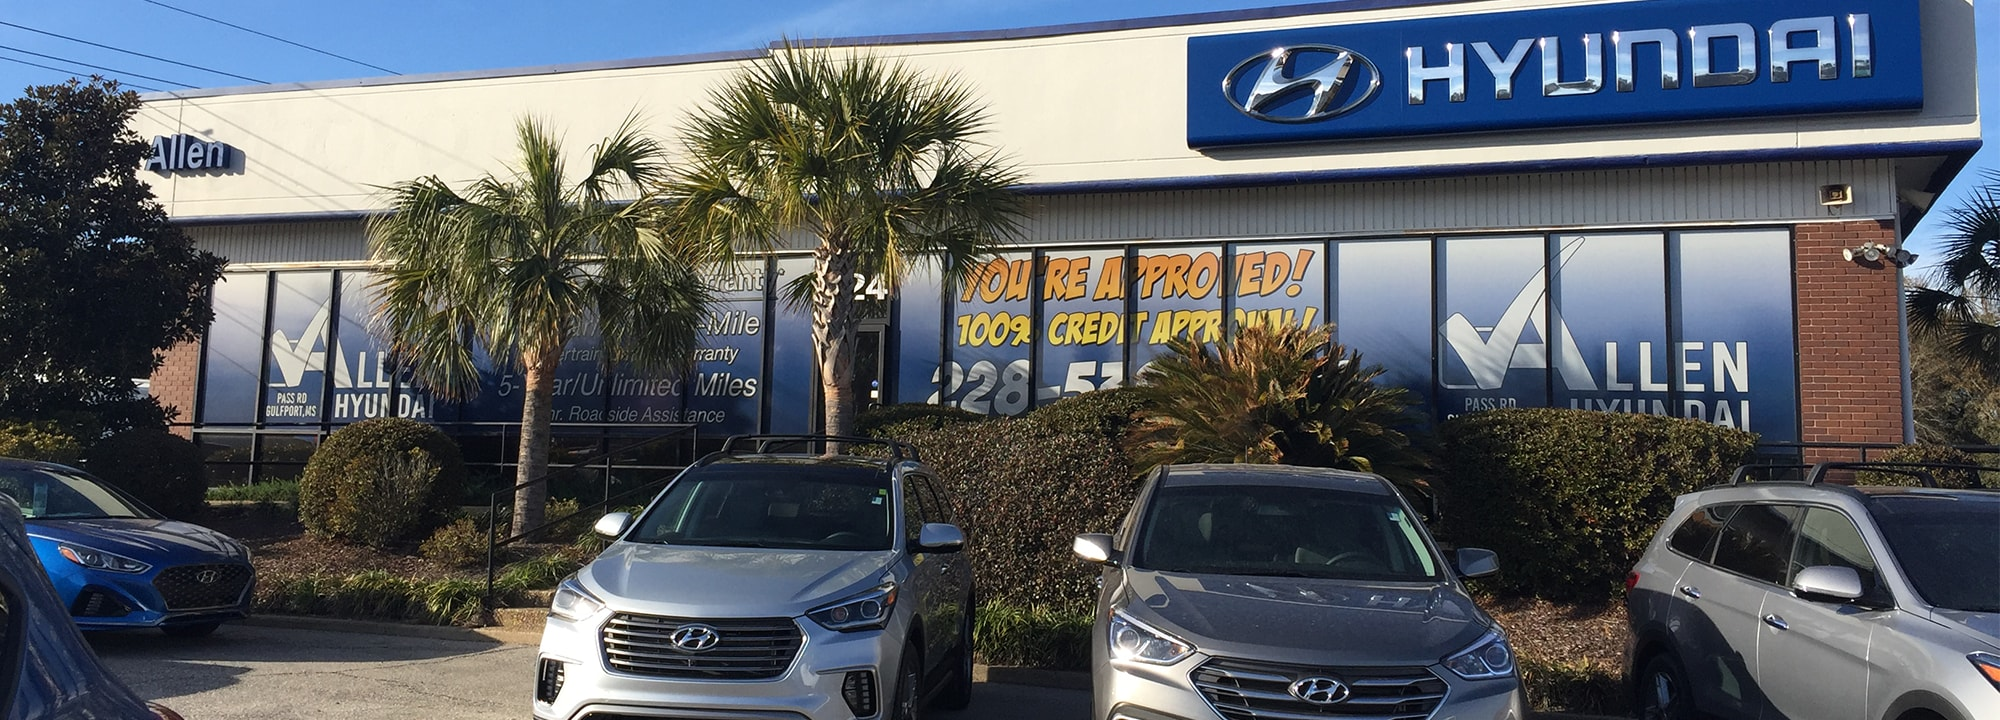 Charming Allen Hyundai Welcomes Your Feedback And Comments   Proudly Serving Gulfport,  Biloxi, Gautier, Long Beach, Hattiesburg, And The Surrounding Areas